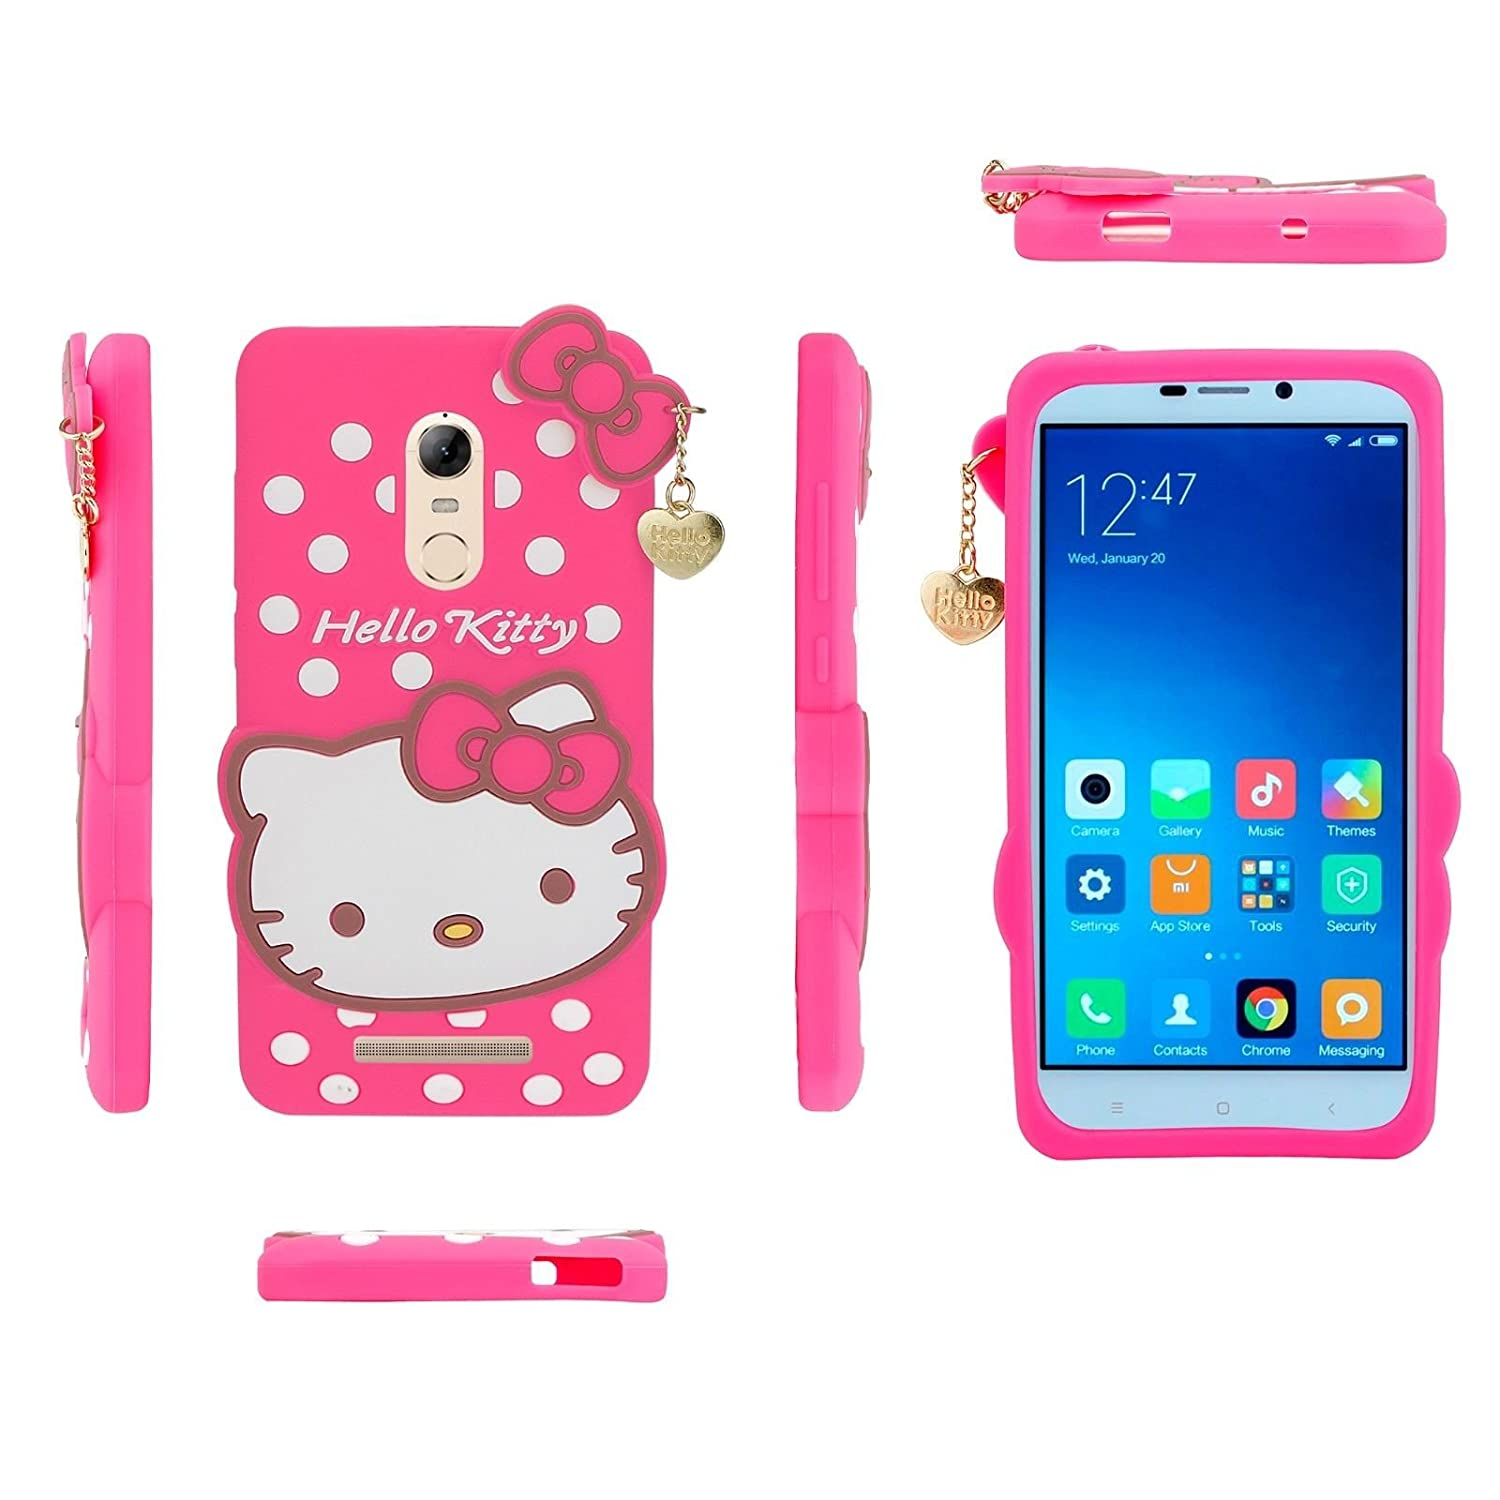 factory authentic 6b6cc fc2e6 MI NOTE 3 HELLO KITTY BACK COVER FOR XIAOMI REDMI NOTE: Amazon.in ...